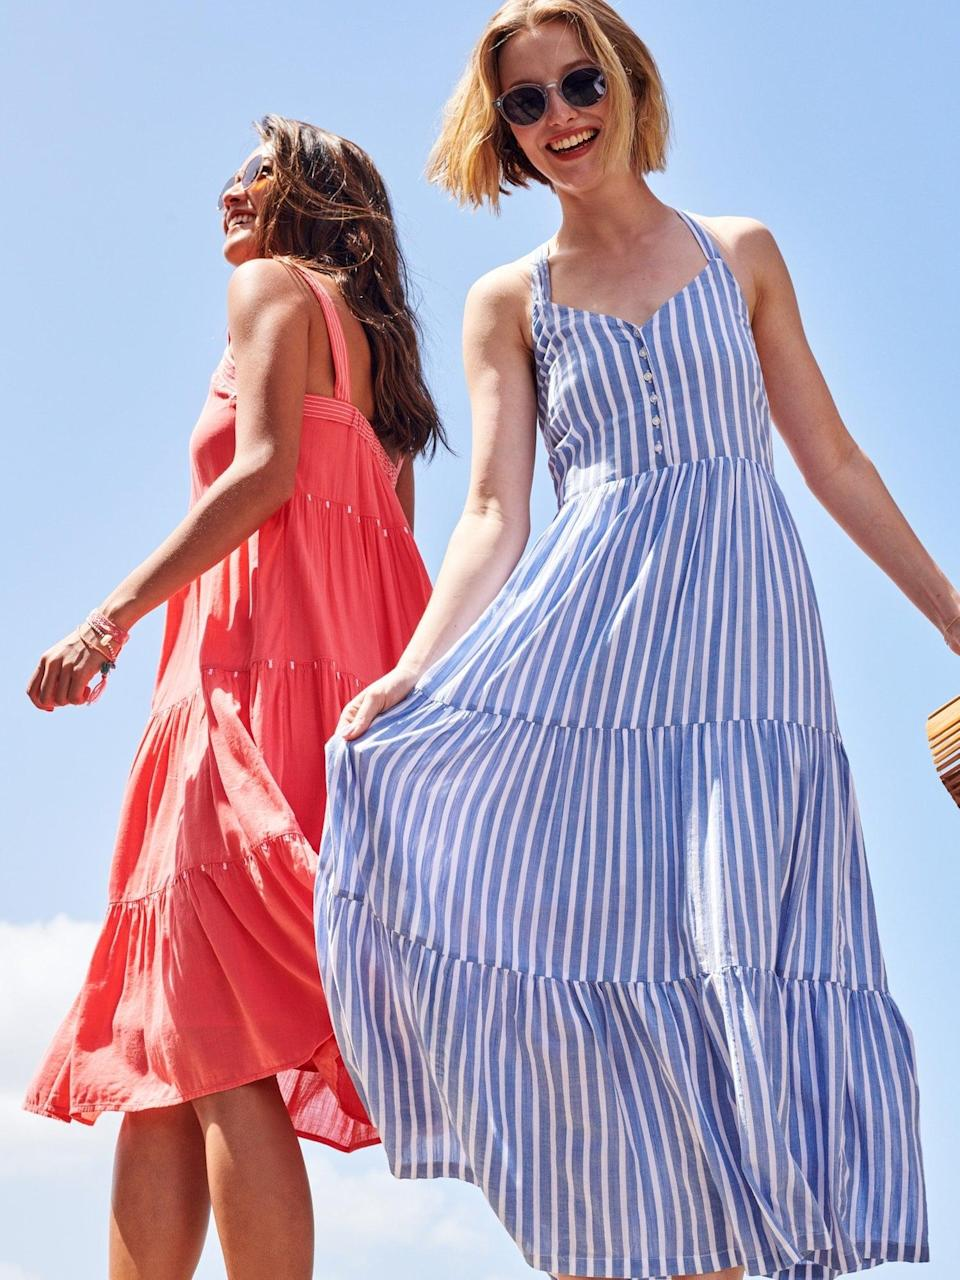 """<p>This <a href=""""https://www.popsugar.com/buy/Old-Navy-Striped-Fit-amp-Flare-Tiered-Maxi-Sundress-586318?p_name=Old%20Navy%20Striped%20Fit%20%26amp%3B%20Flare%20Tiered%20Maxi%20Sundress&retailer=oldnavy.gap.com&pid=586318&price=45&evar1=fab%3Aus&evar9=47589362&evar98=https%3A%2F%2Fwww.popsugar.com%2Fphoto-gallery%2F47589362%2Fimage%2F47589365%2FOld-Navy-Striped-Fit-Flare-Tiered-Maxi-Sundress&list1=shopping%2Cold%20navy%2Cdresses%2Csummer%2Cproducts%20under%20%2450&prop13=api&pdata=1"""" class=""""link rapid-noclick-resp"""" rel=""""nofollow noopener"""" target=""""_blank"""" data-ylk=""""slk:Old Navy Striped Fit &amp; Flare Tiered Maxi Sundress"""">Old Navy Striped Fit &amp; Flare Tiered Maxi Sundress</a> ($45, originally $50) is super comfortable.</p>"""